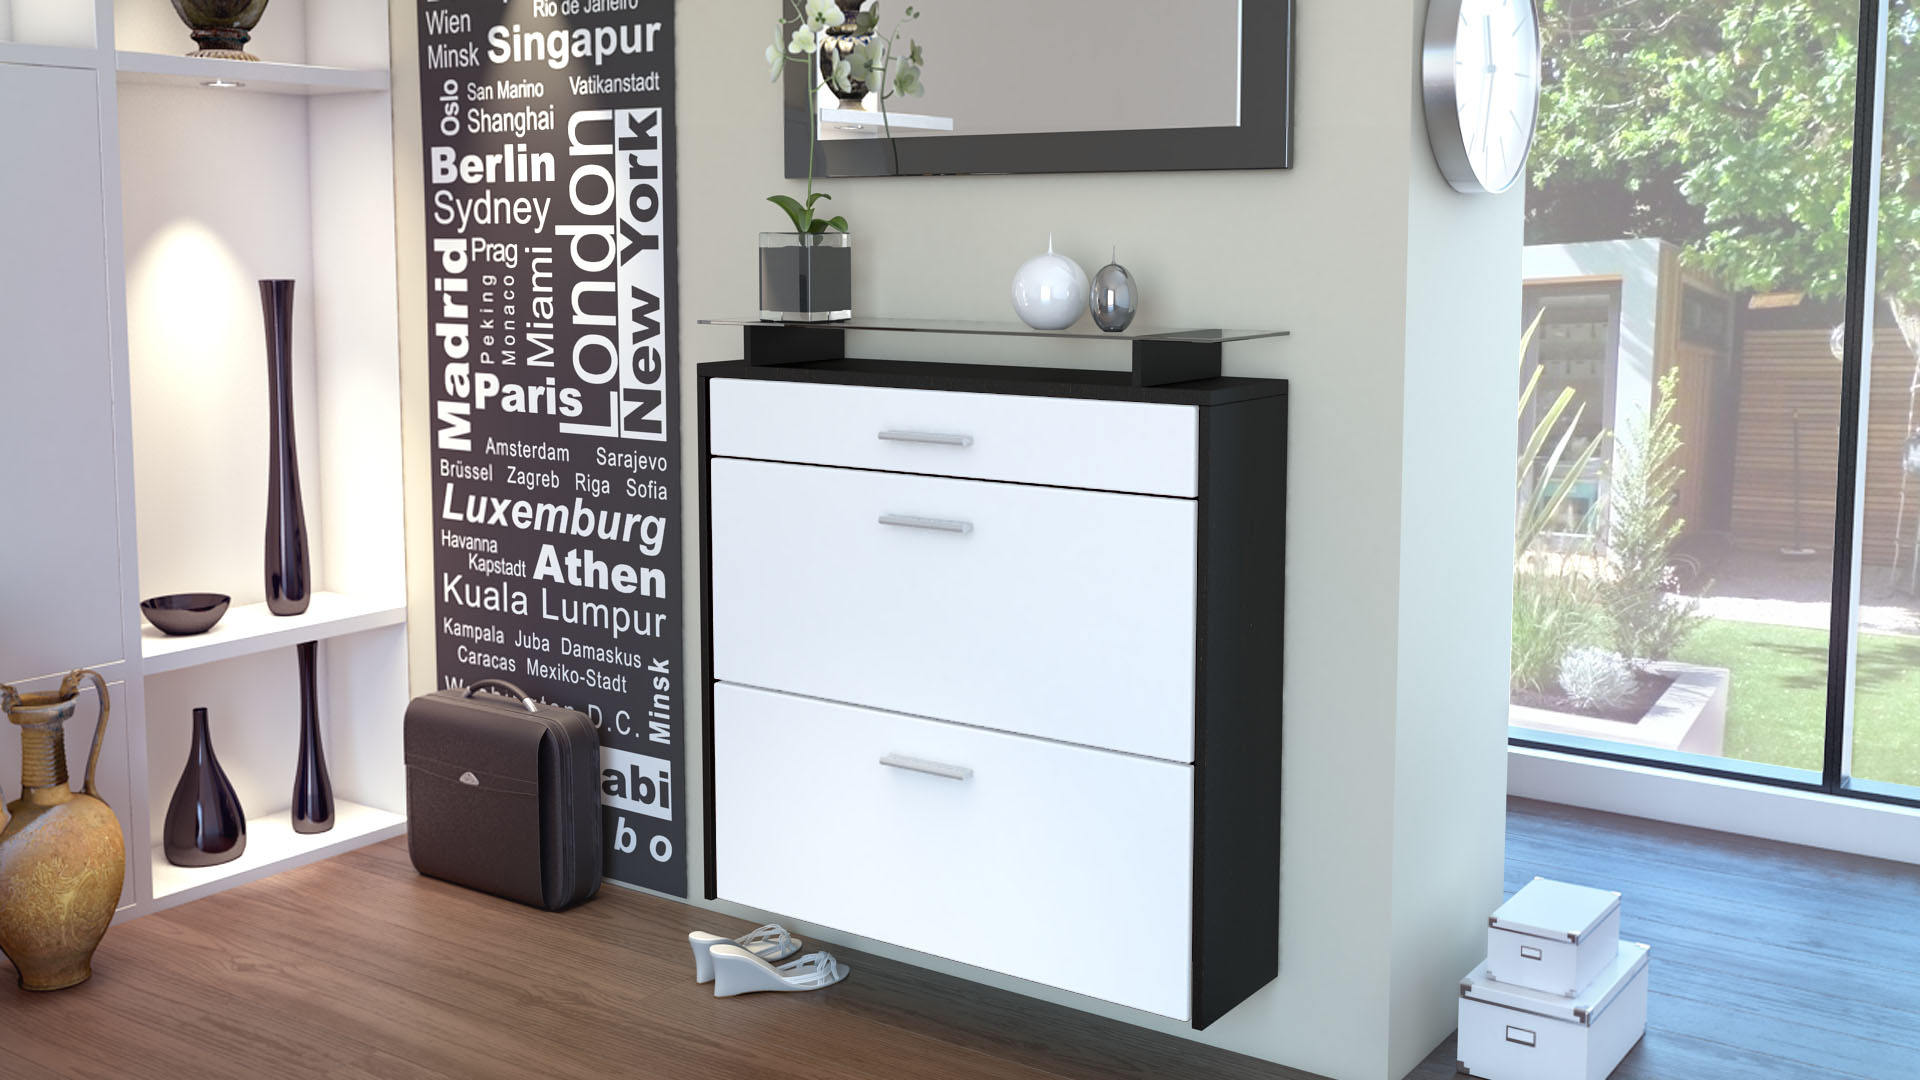 schuhschrank schuhkipper h ngeschuhschrank malea schwarz hochglanz naturt ne ebay. Black Bedroom Furniture Sets. Home Design Ideas